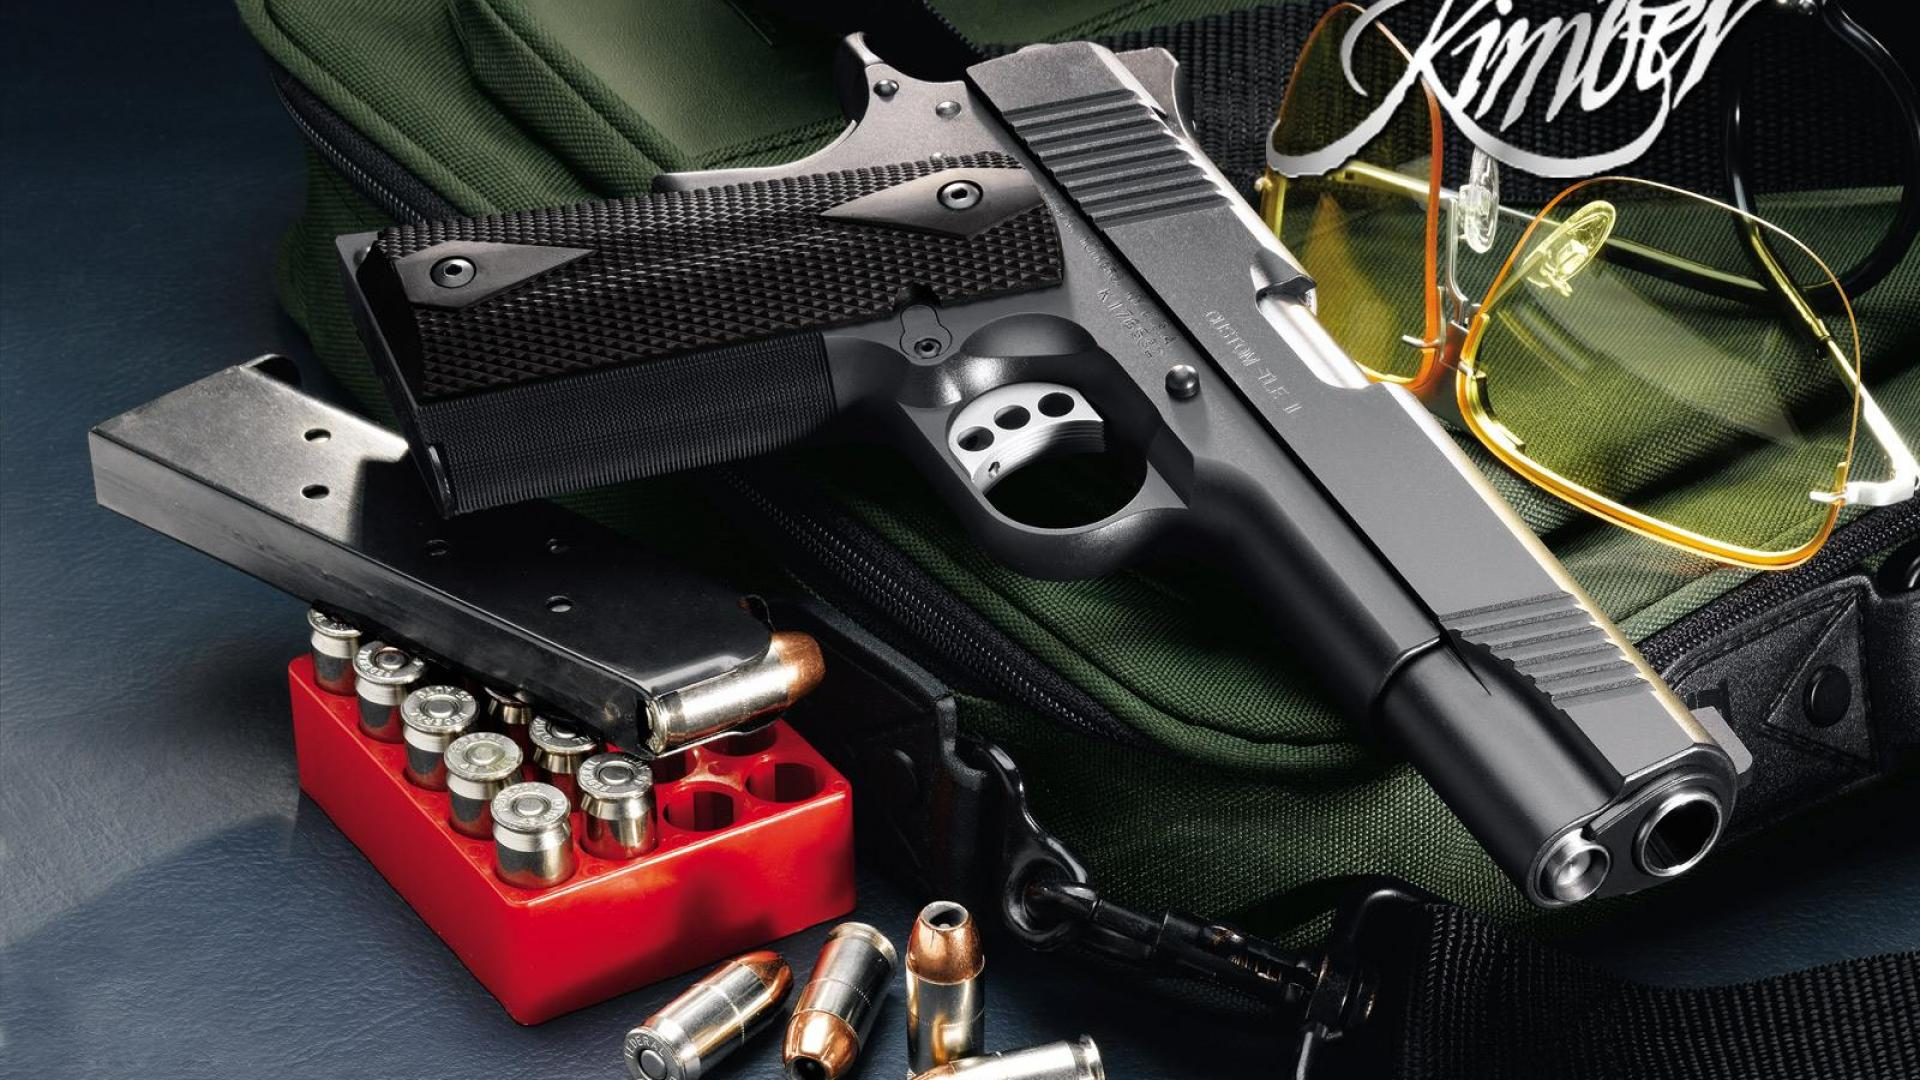 Kimber Pistols Wallpapers Pictures 1920x1080